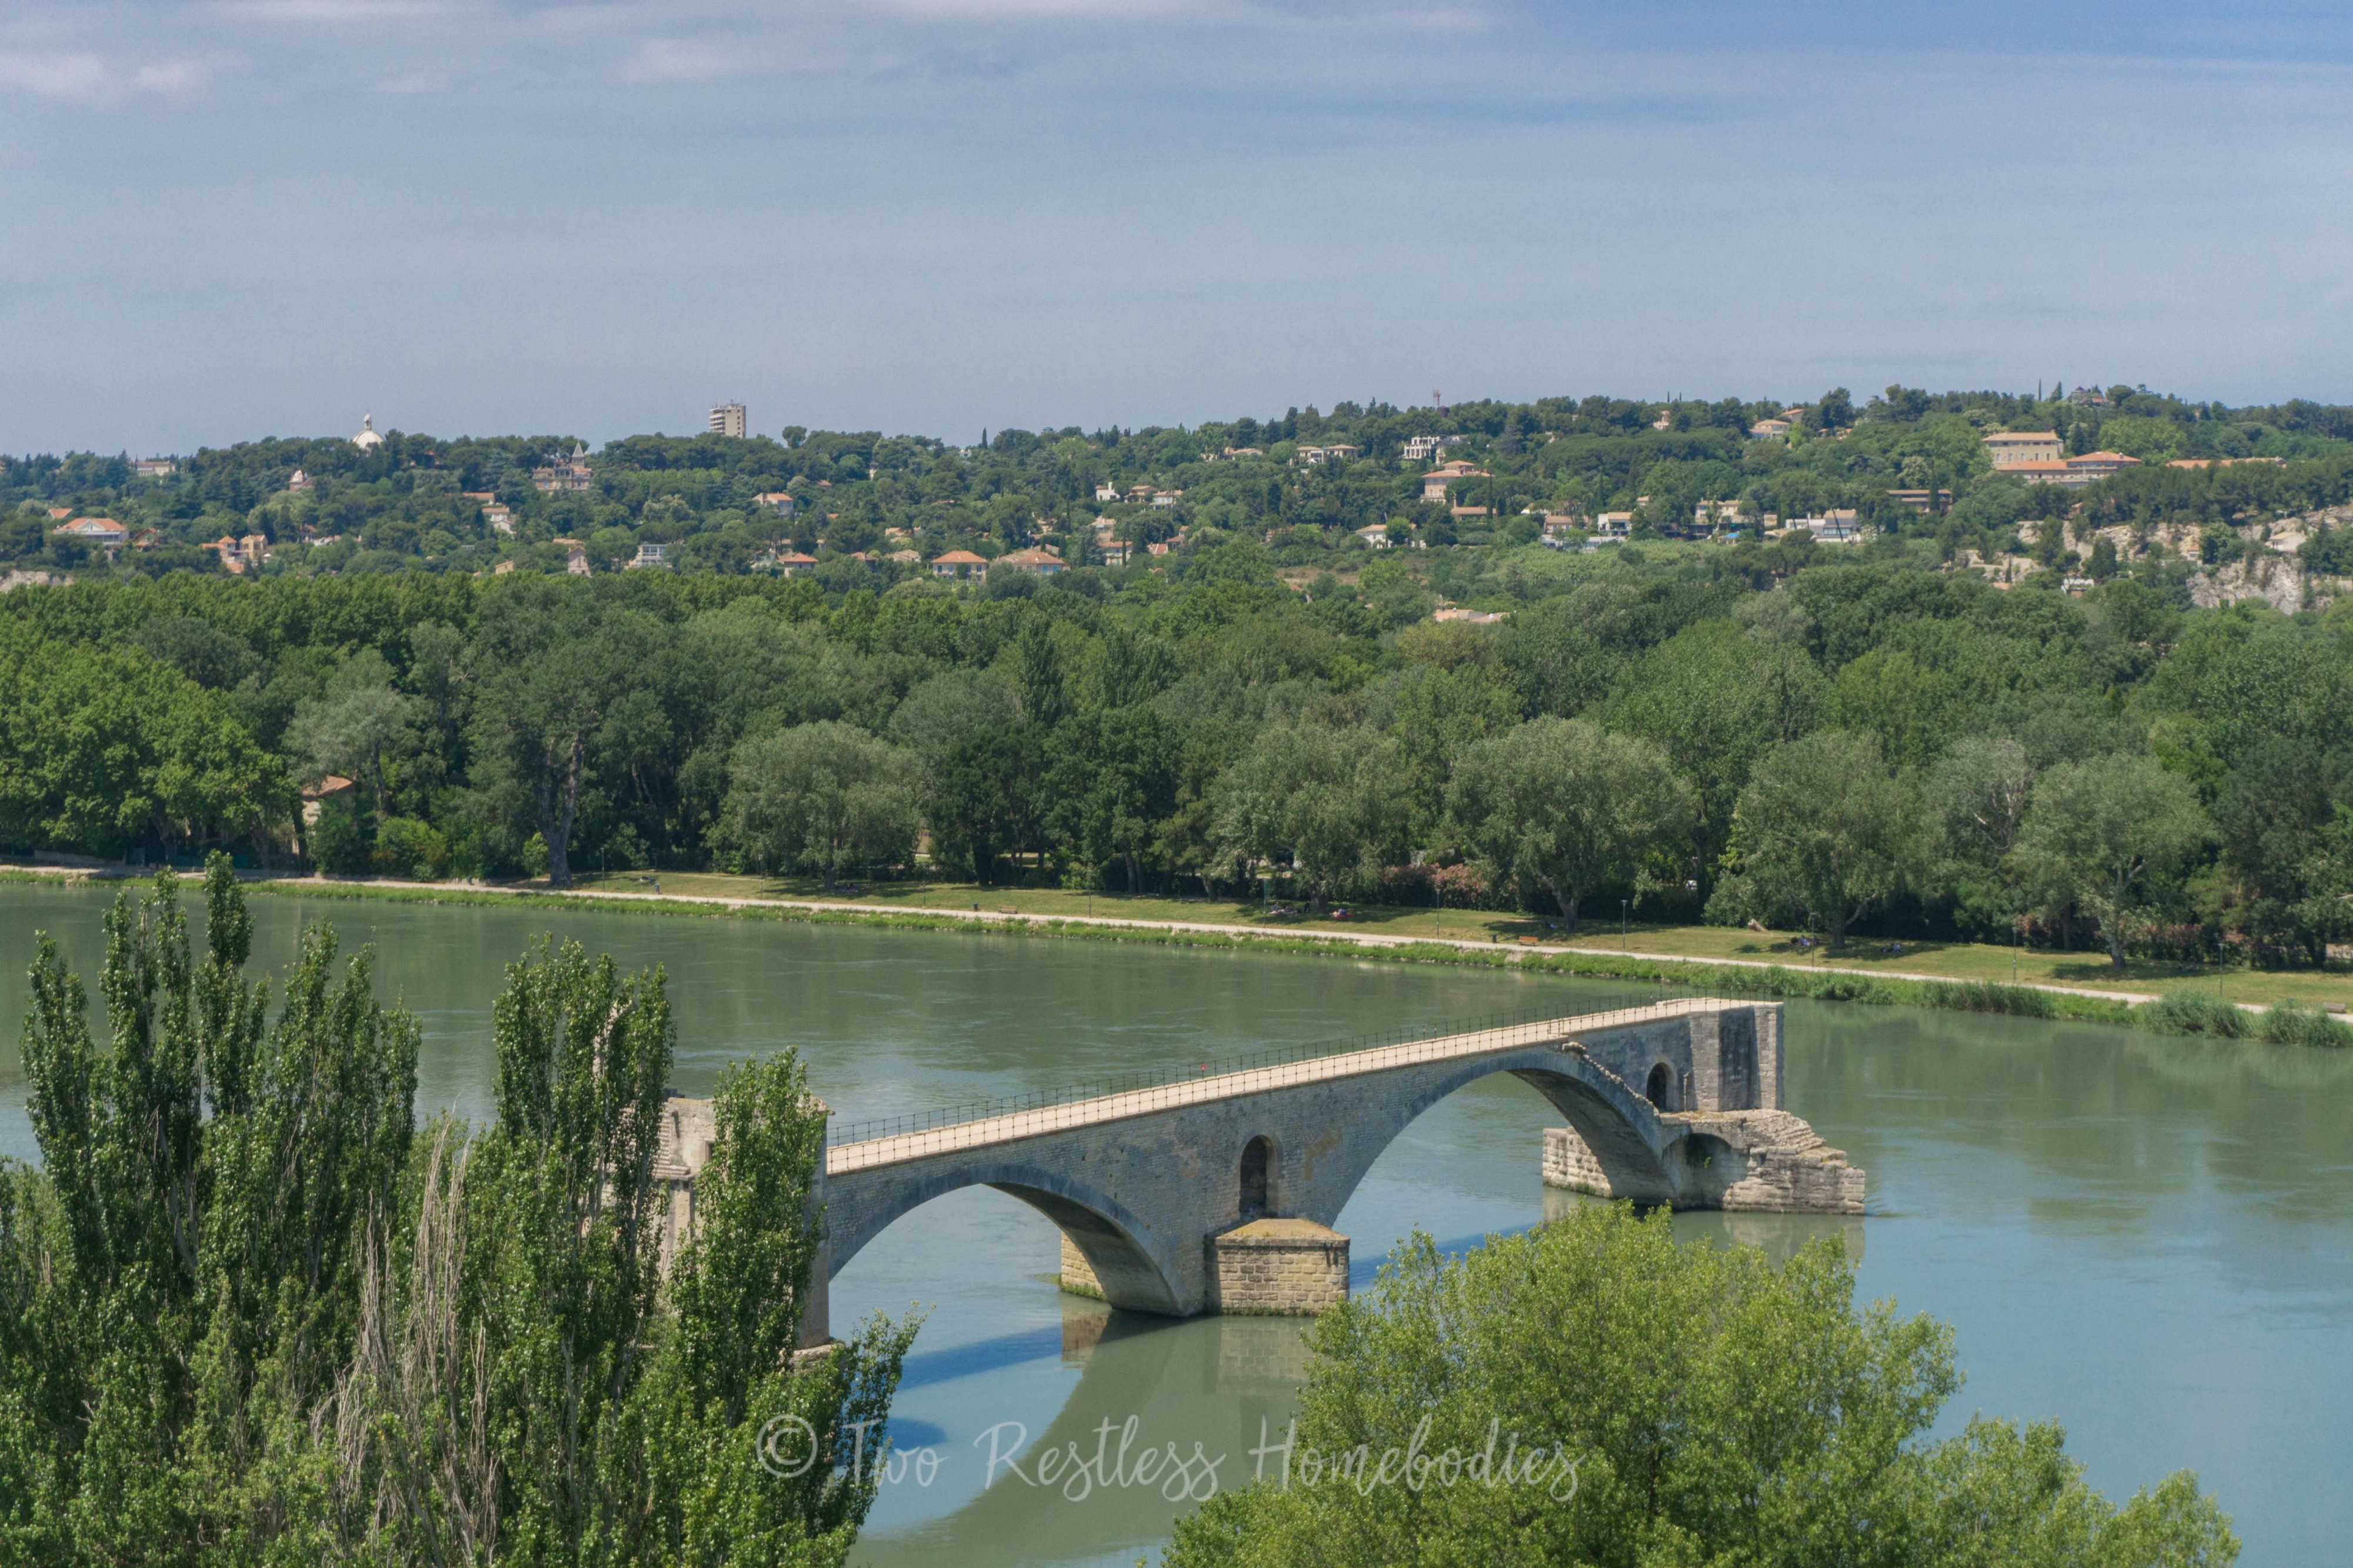 Sur Le Pont D Avignon Exploring The Pont St Benezet By Luke And Meagan Two Restless Homebodies World Travel For Introverts And Couples Medium